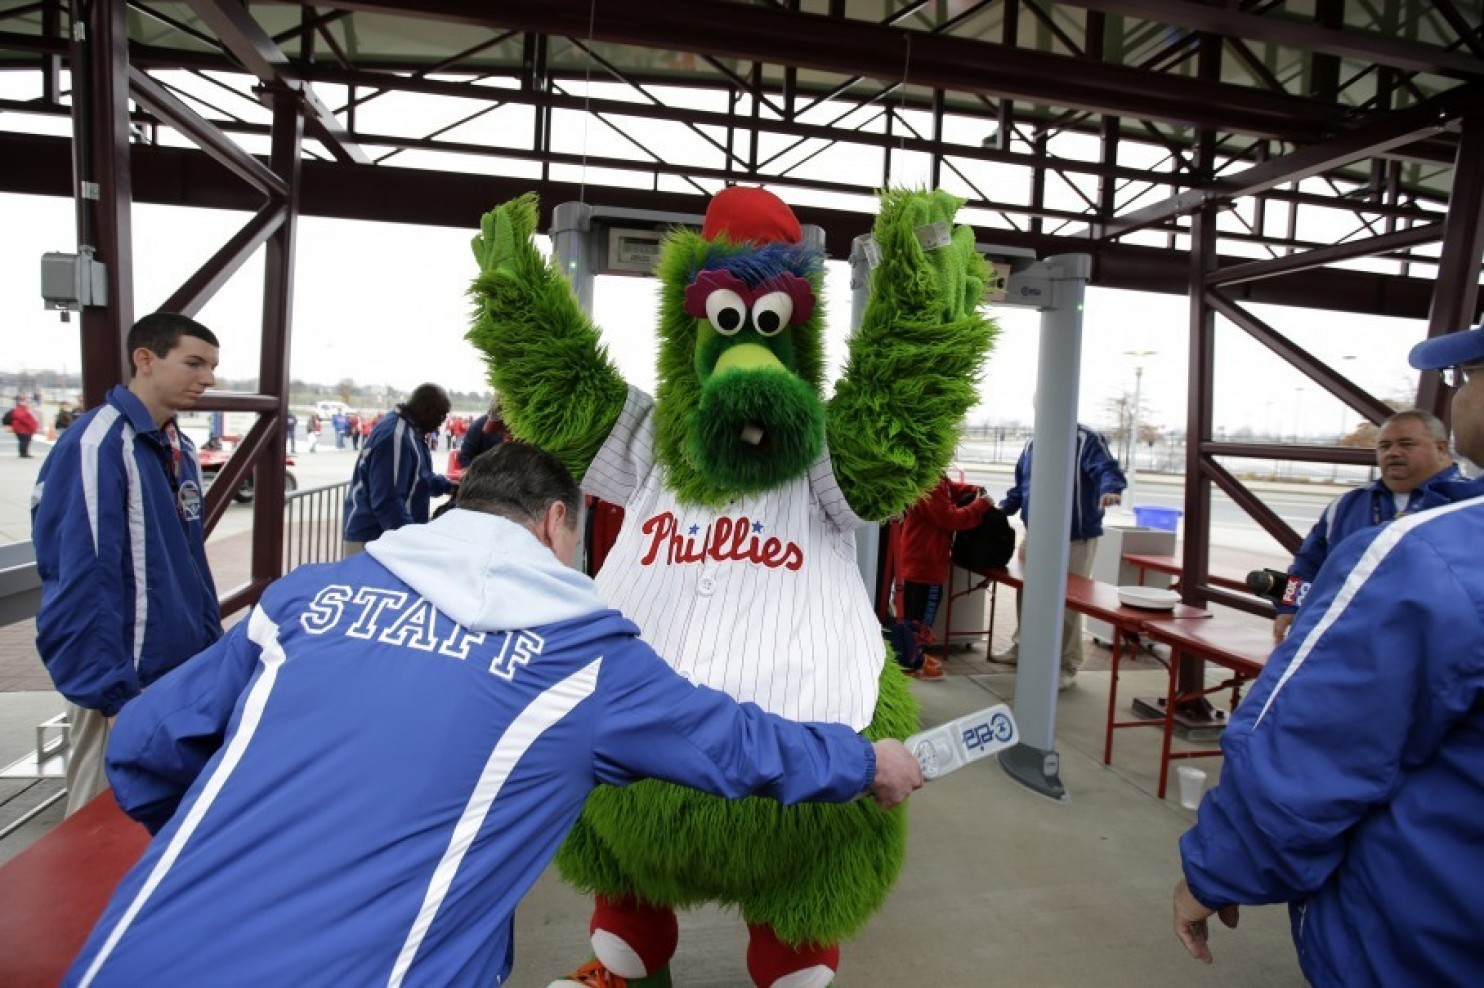 Phillies fan injured after being shot by Phillie Phanatic's hot dog cannon